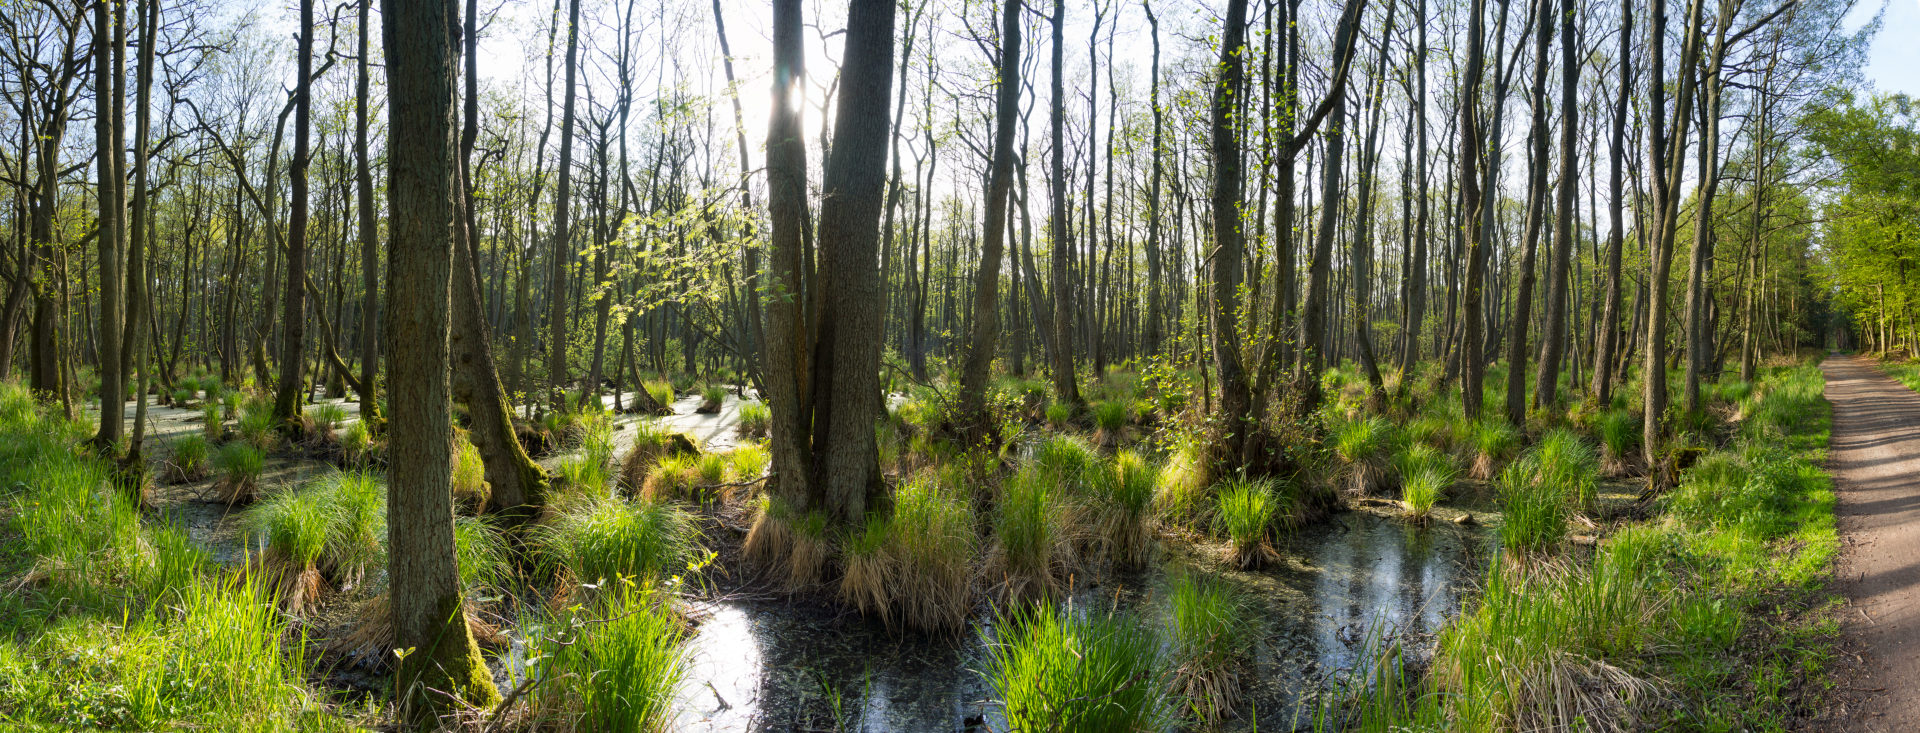 Panorama, Baltic Sea, Western Pomerania Lagoon Area National Park, Darss forest, swamp forest